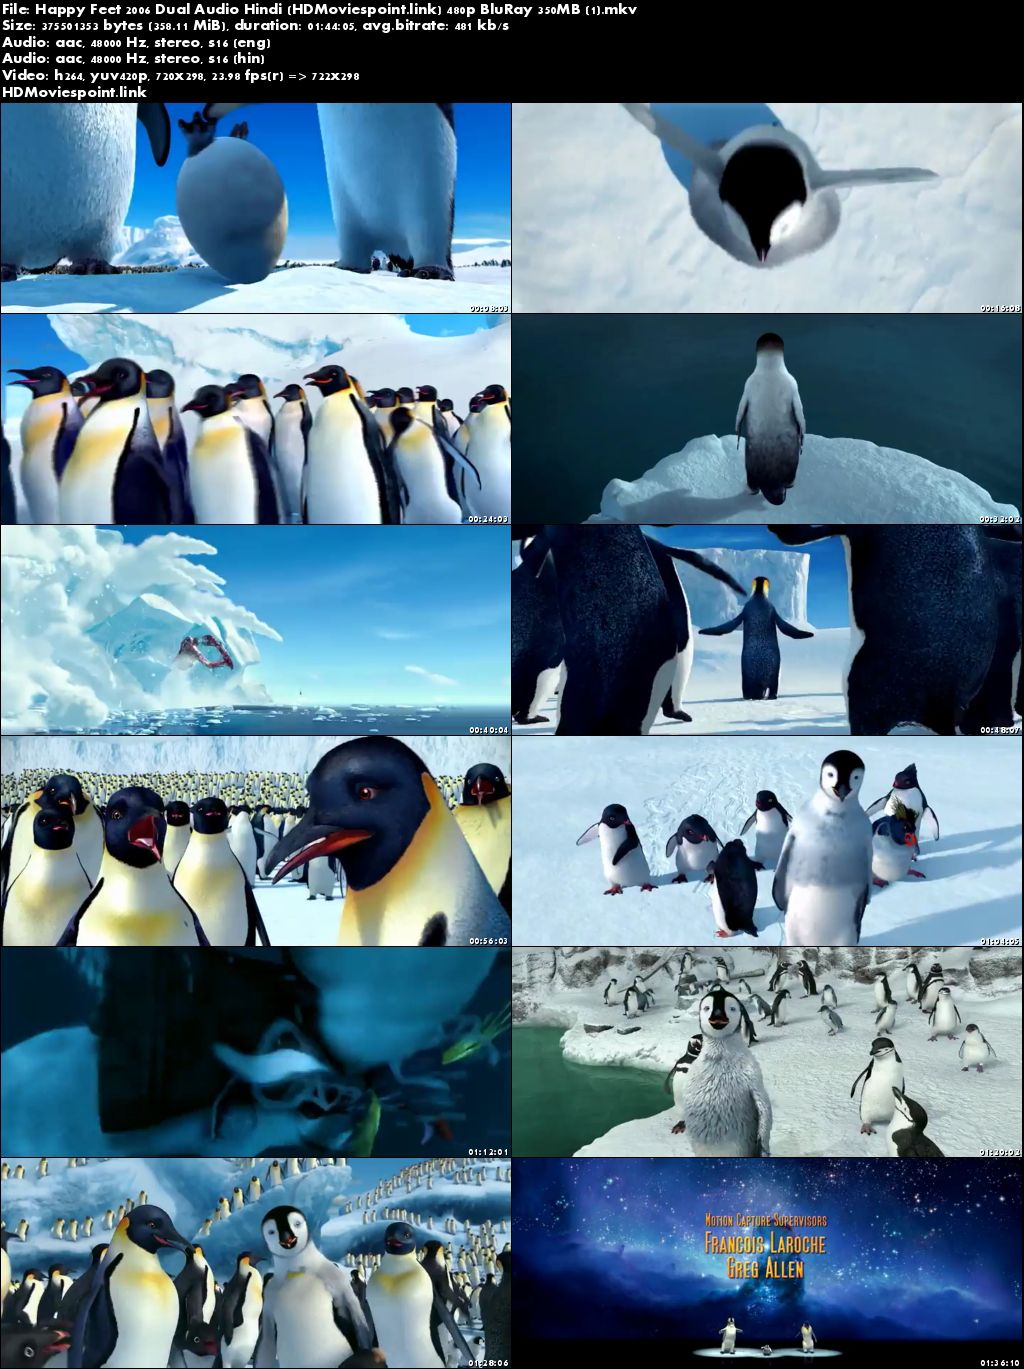 happy feet 2006 movie dual audio free download 300mb